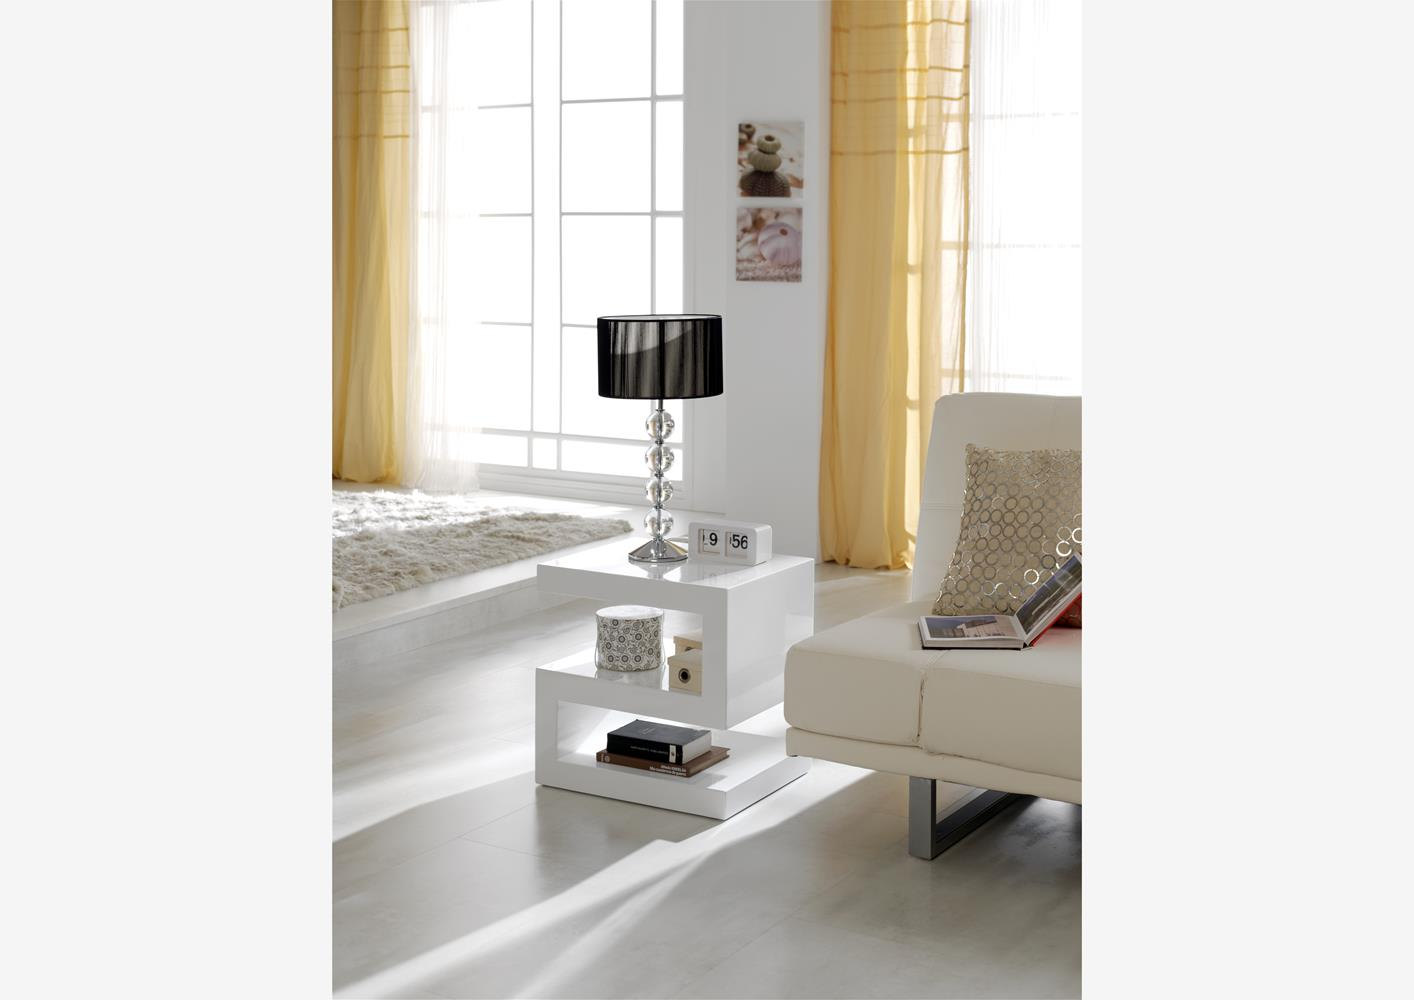 acheter votre bout de canap en laqu blanc chez simeuble. Black Bedroom Furniture Sets. Home Design Ideas